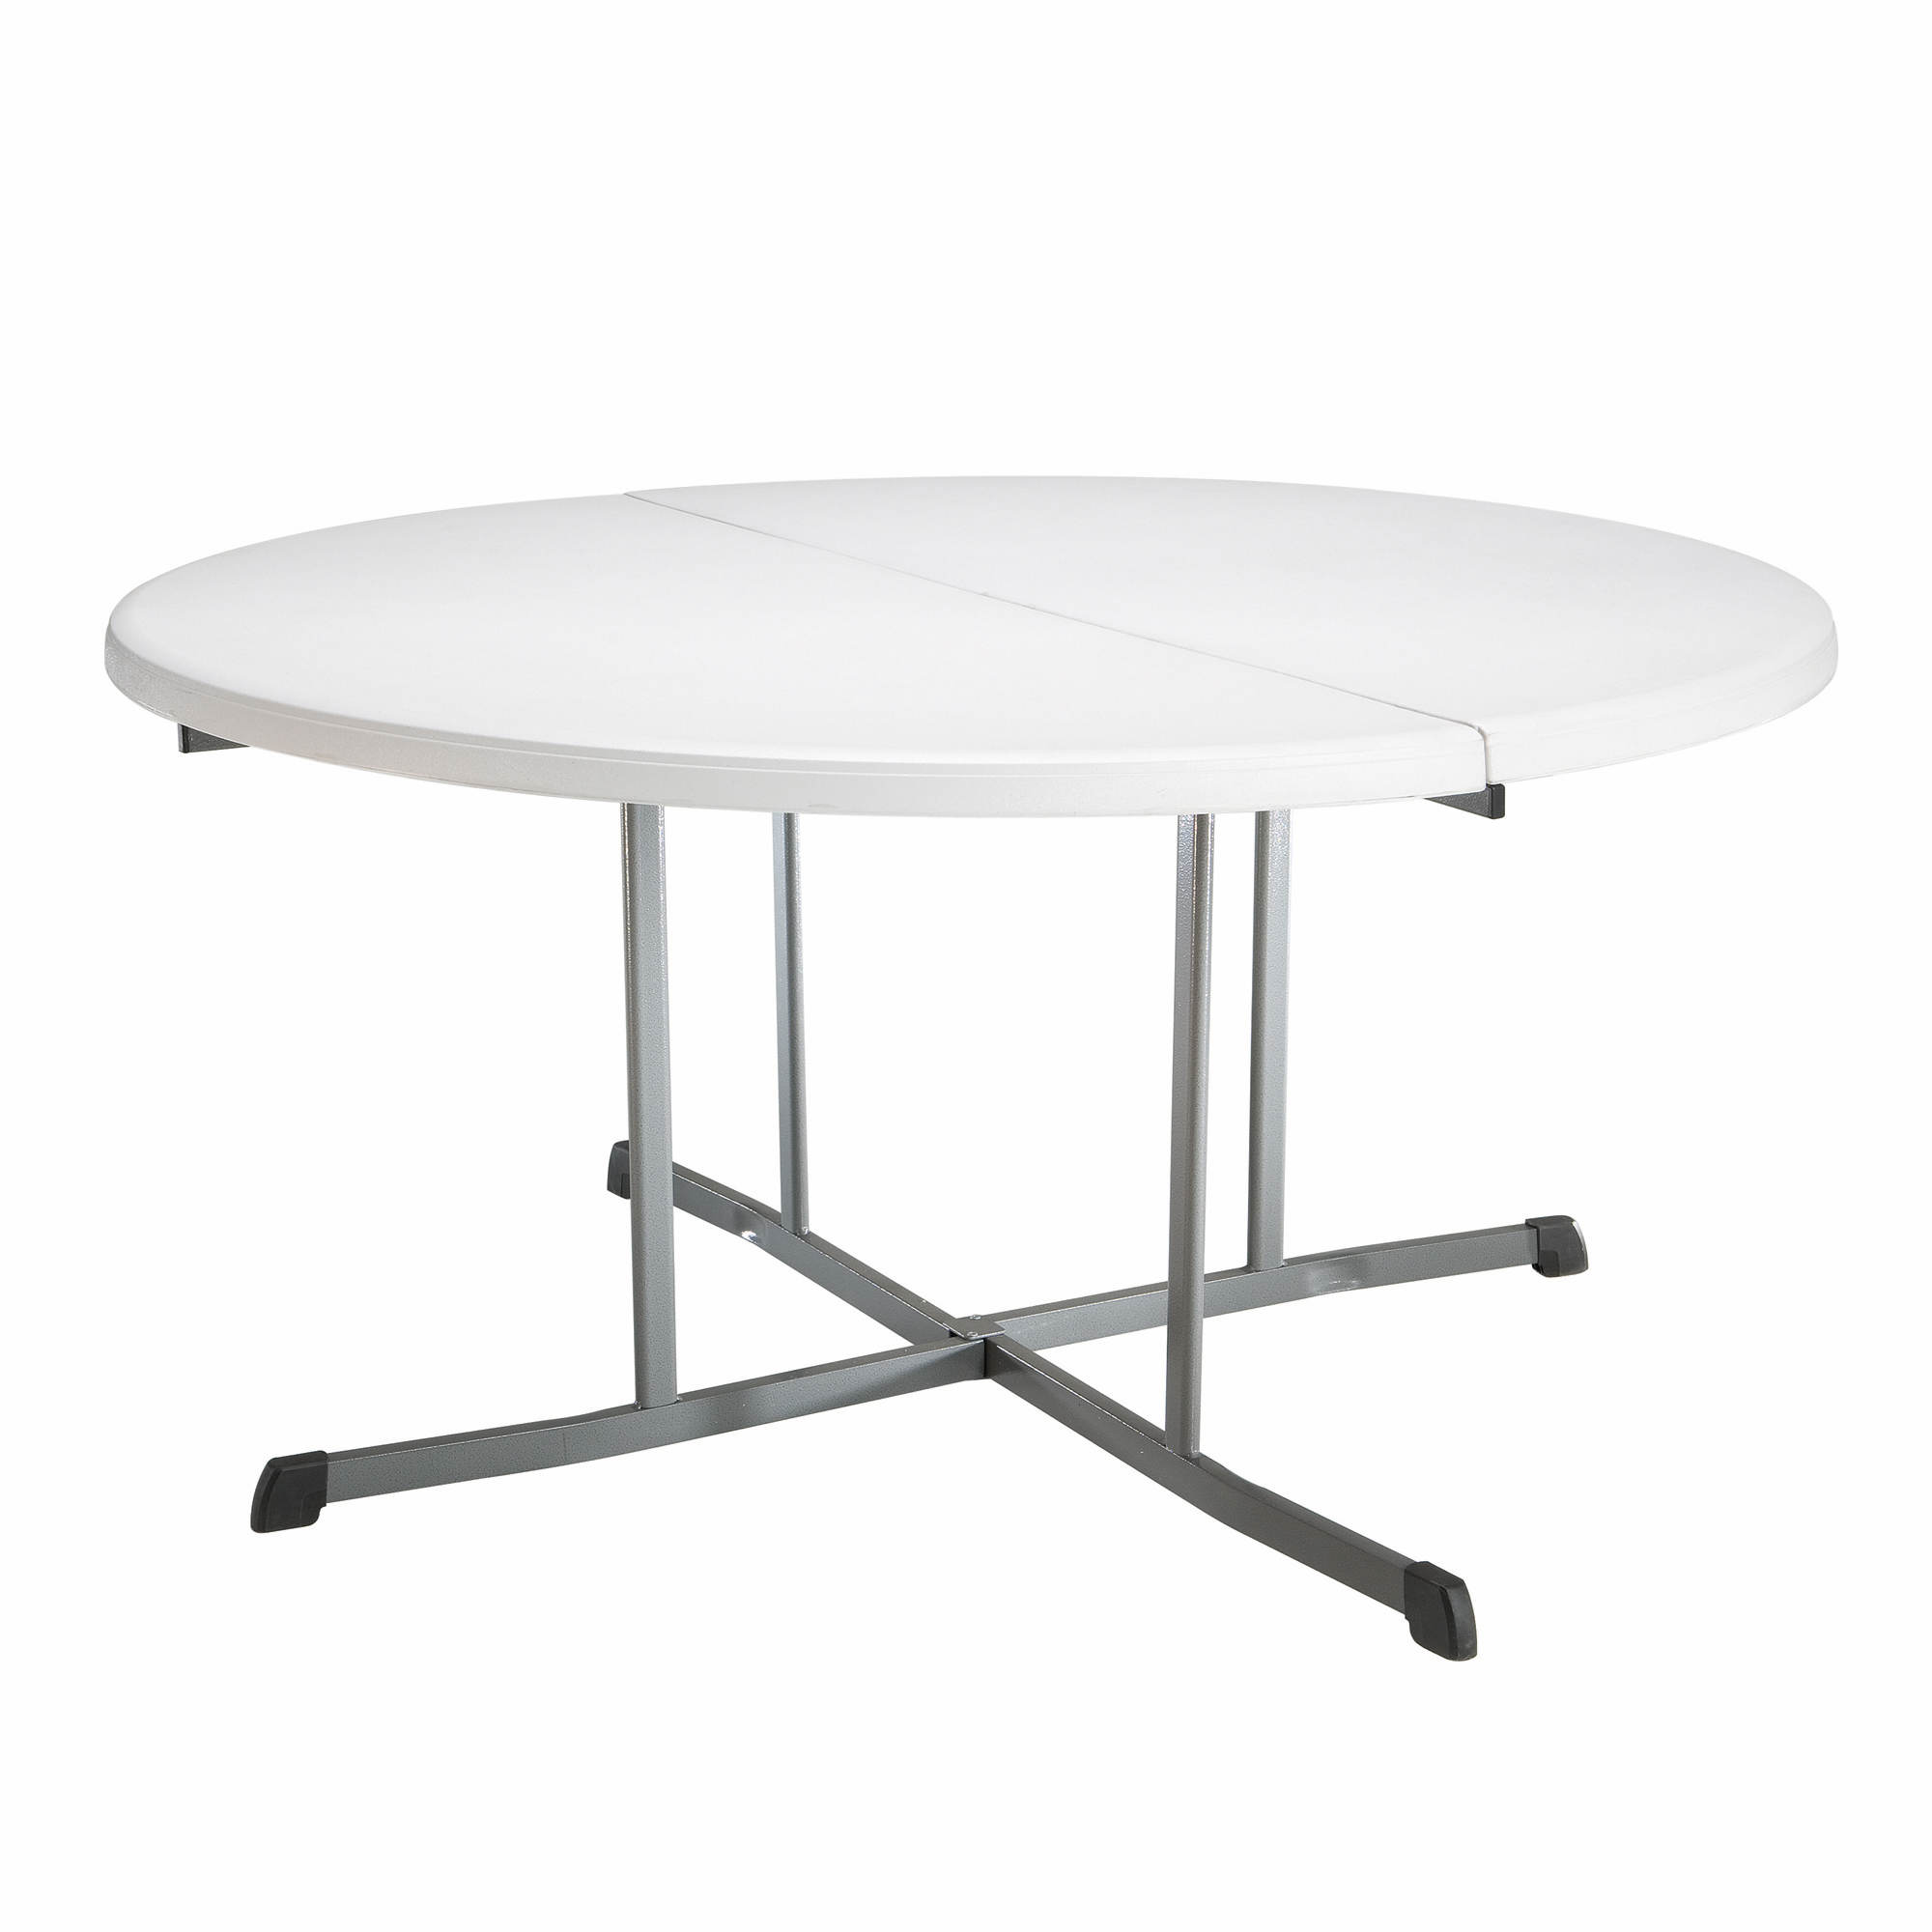 Fold In Half Round Table Lifetime 60 Fold In Half Round Table White Bjs Wholesale Club